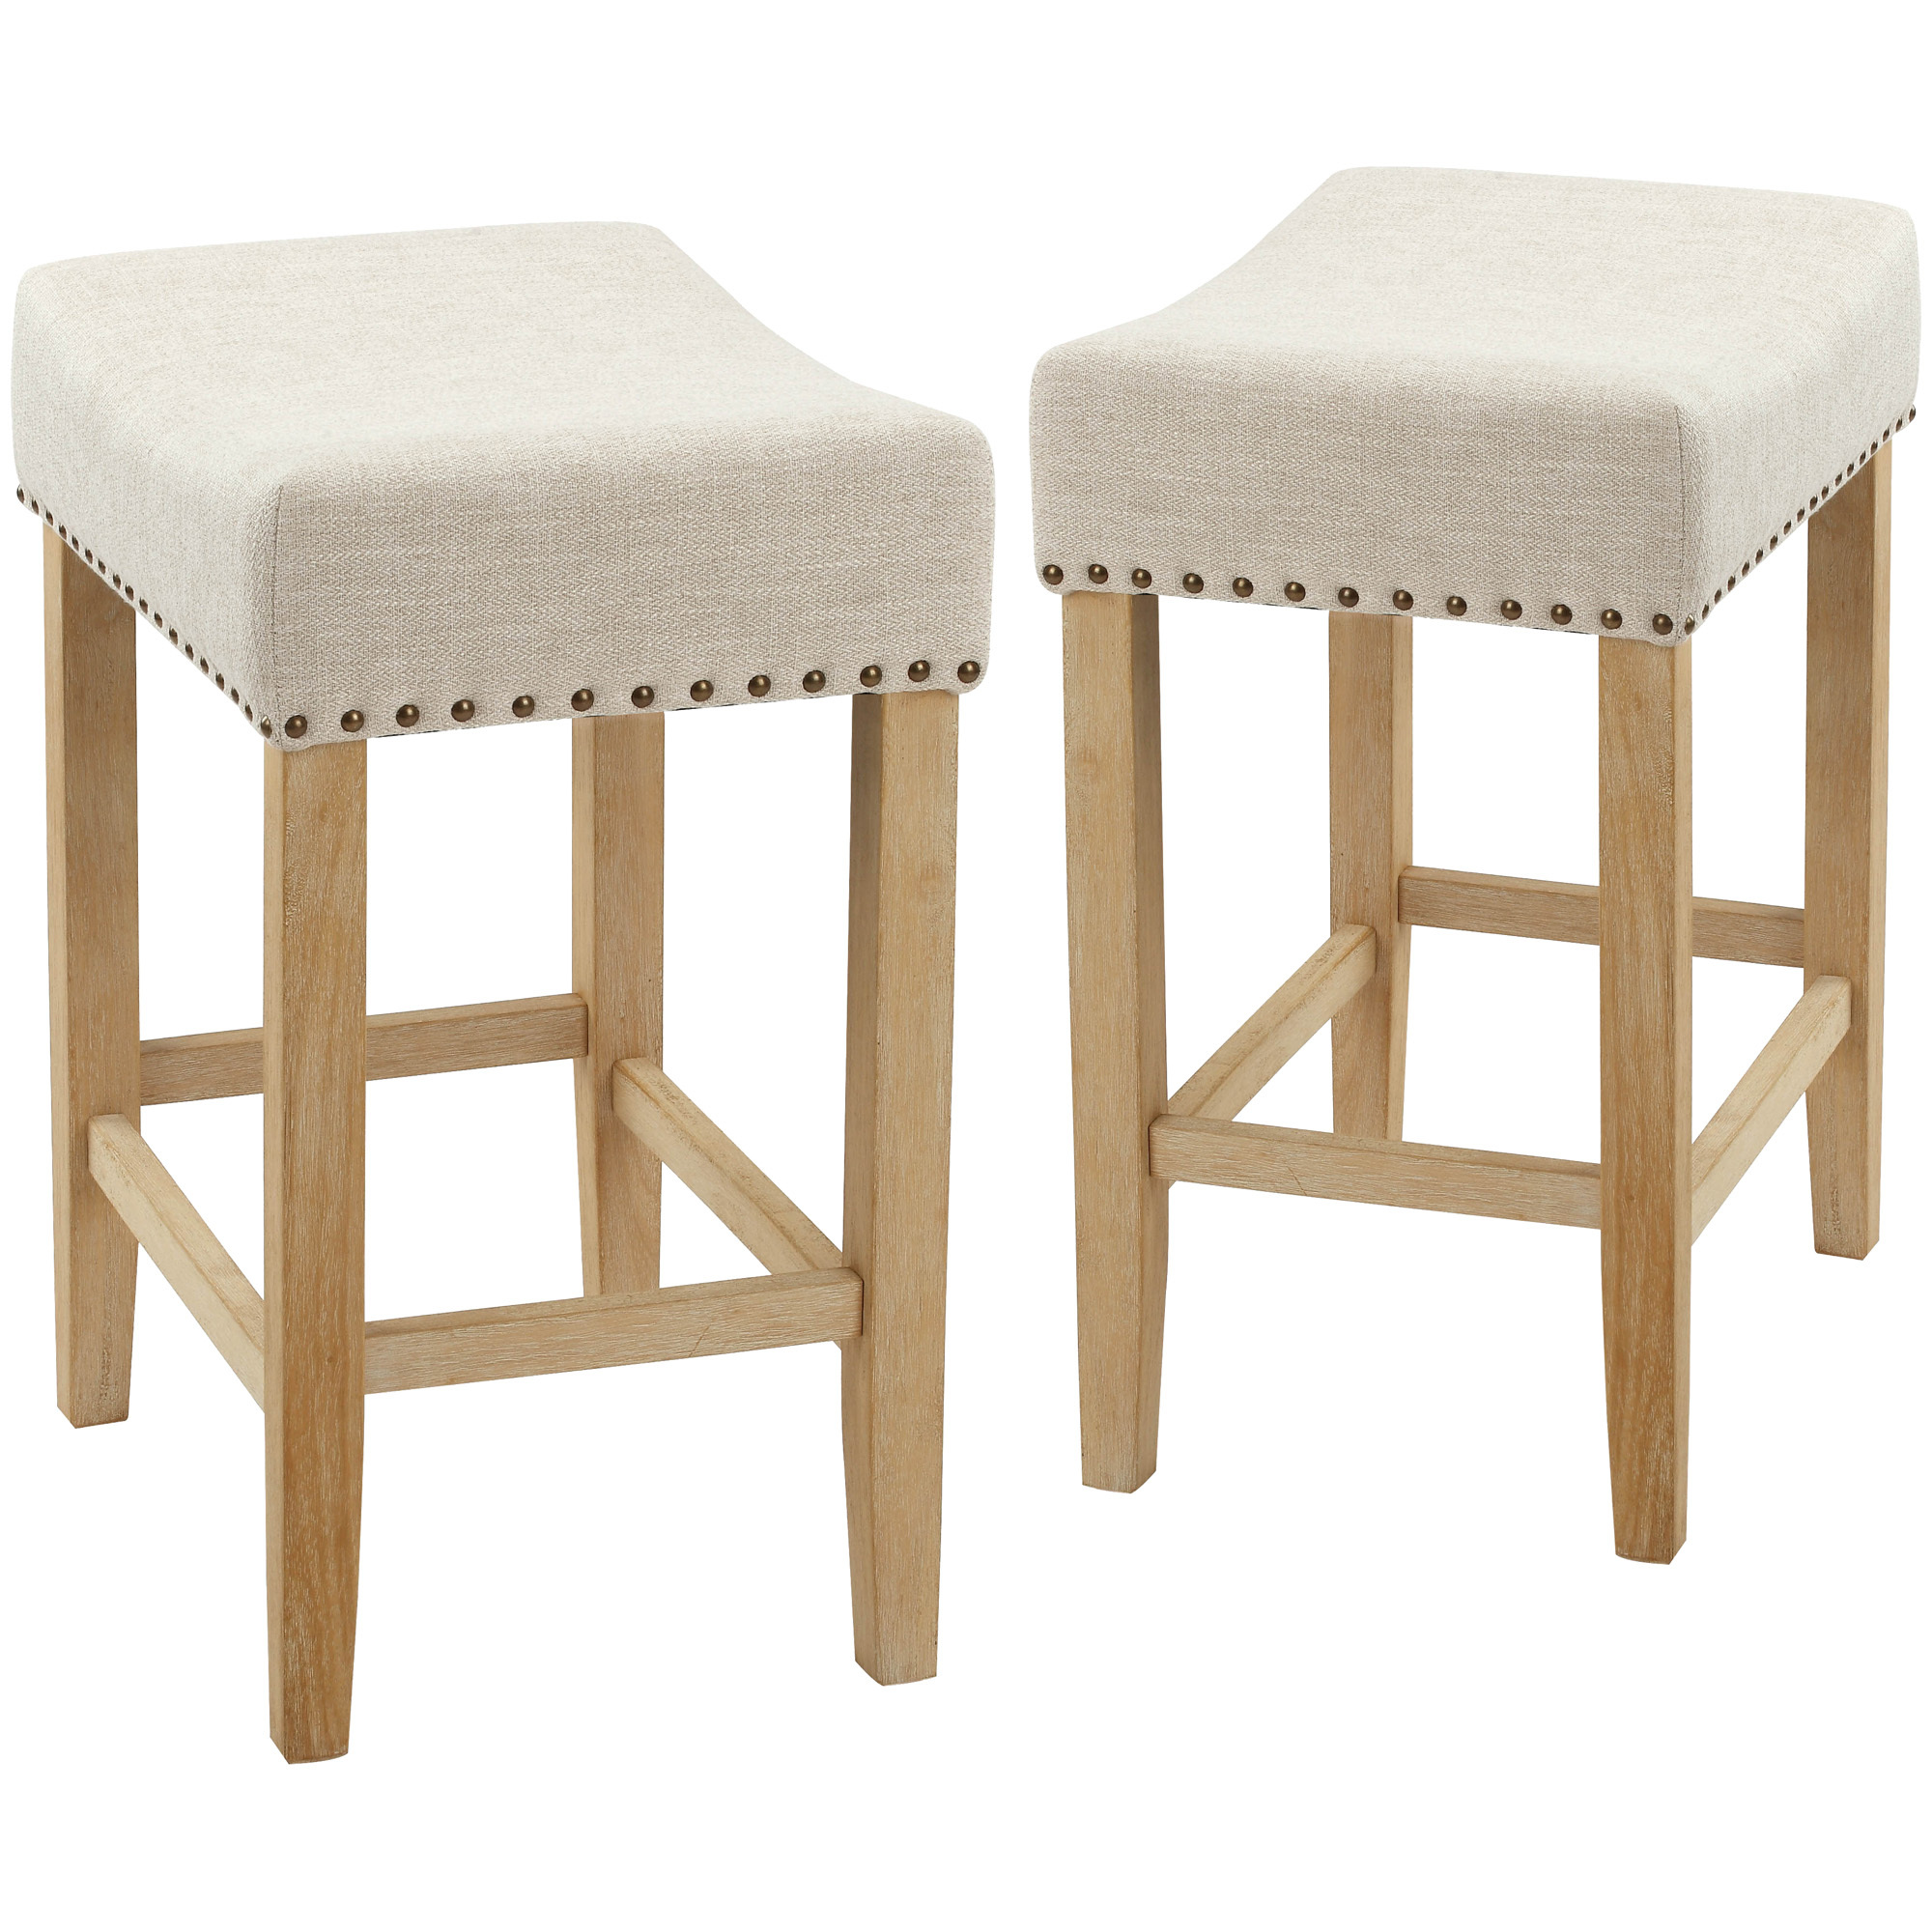 Image of: Temple Webster 64cm Nailhead Backless Counter Stools Reviews